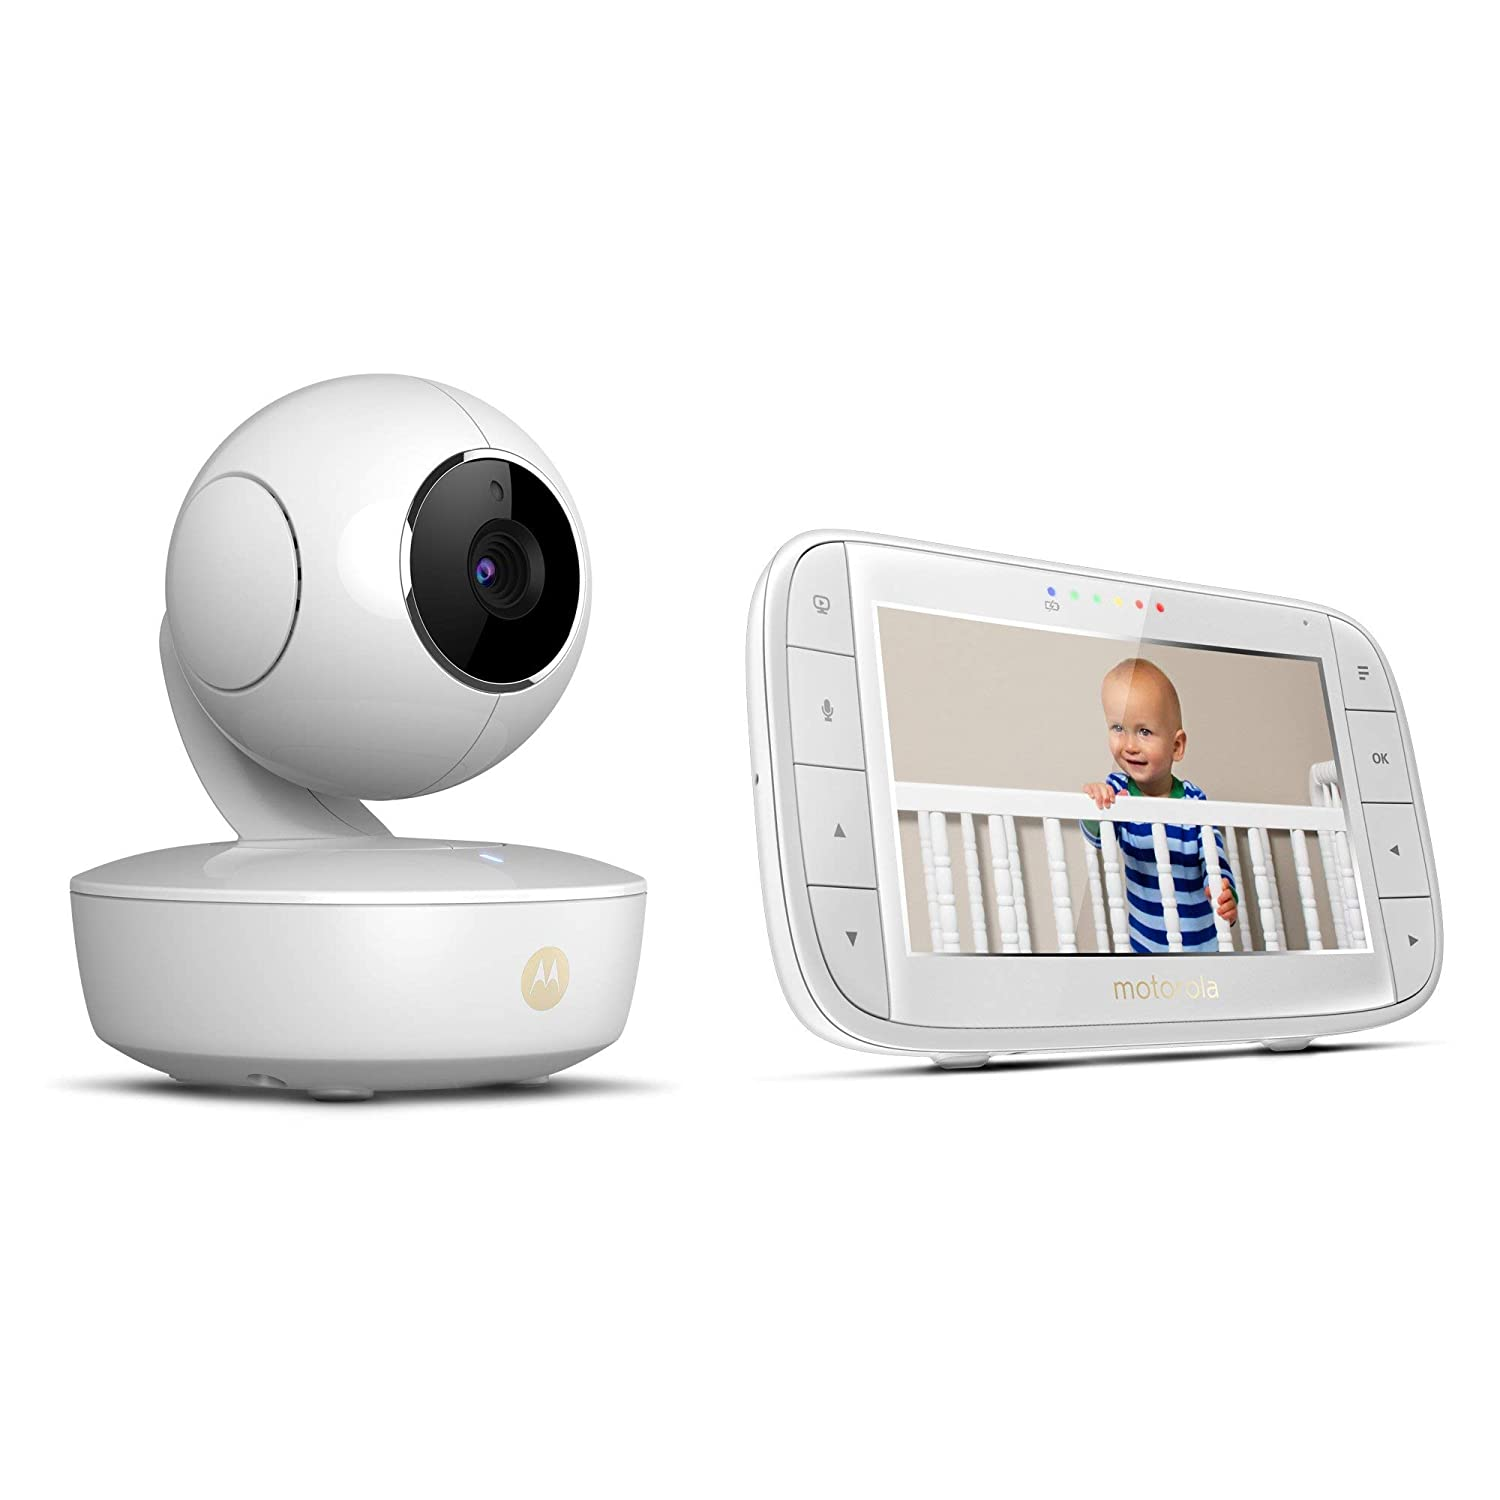 Exclusive Motorola Baby Bundle – MBP36XL Video Baby Monitor with 5 LCD Display Pan Tilt Zoom, Rechargeable Camera and MBP69SN Smart Ear Thermometer